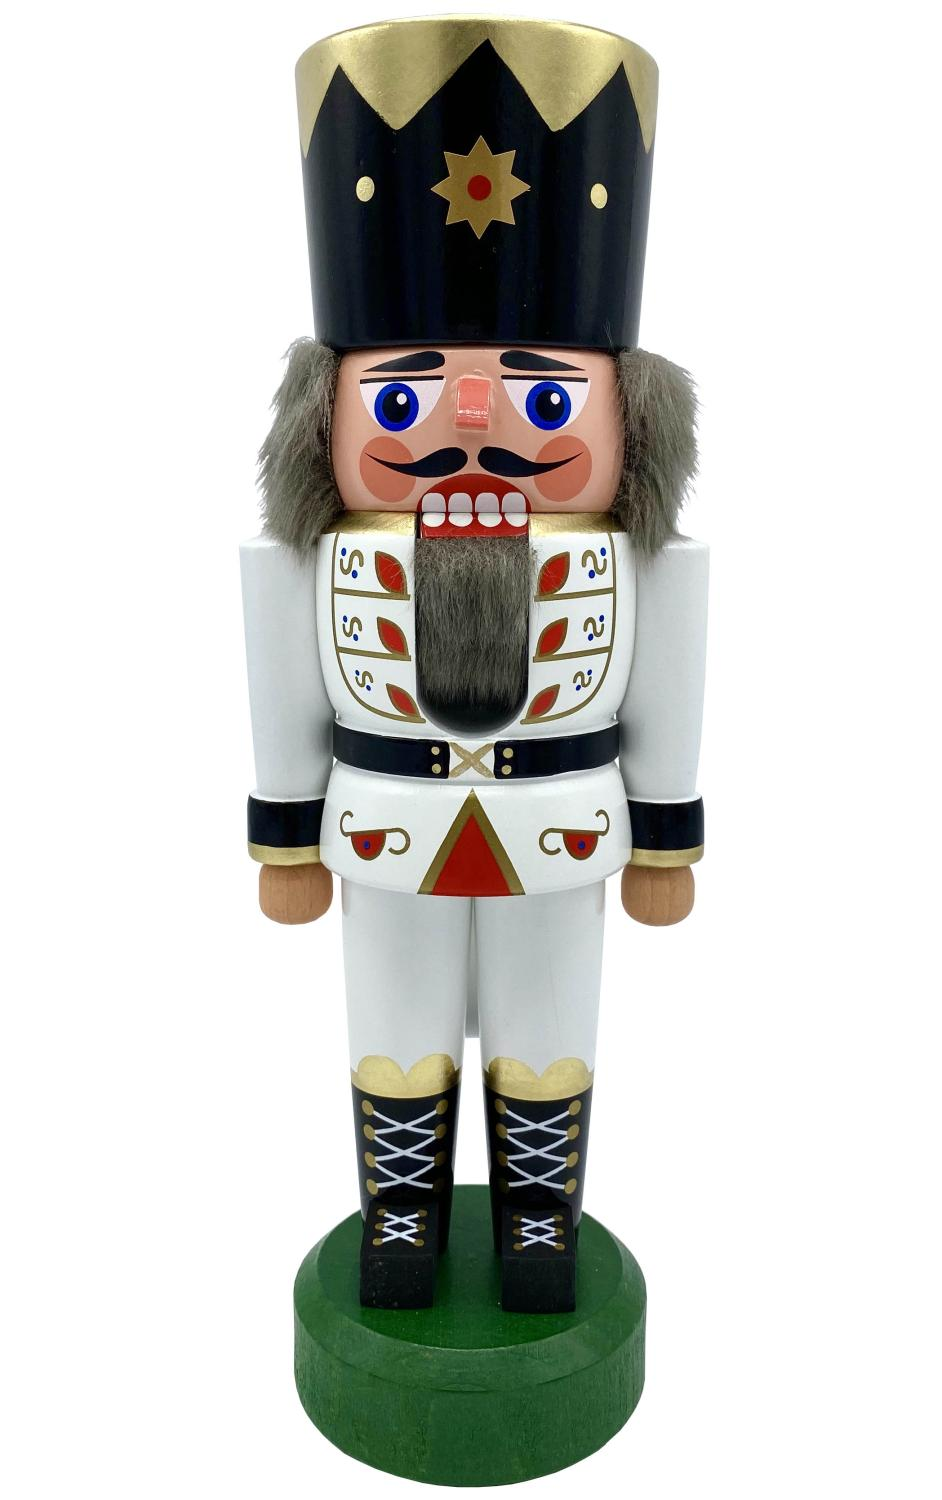 012-0421W - Dregeno Nutcracker - White King - 8.75